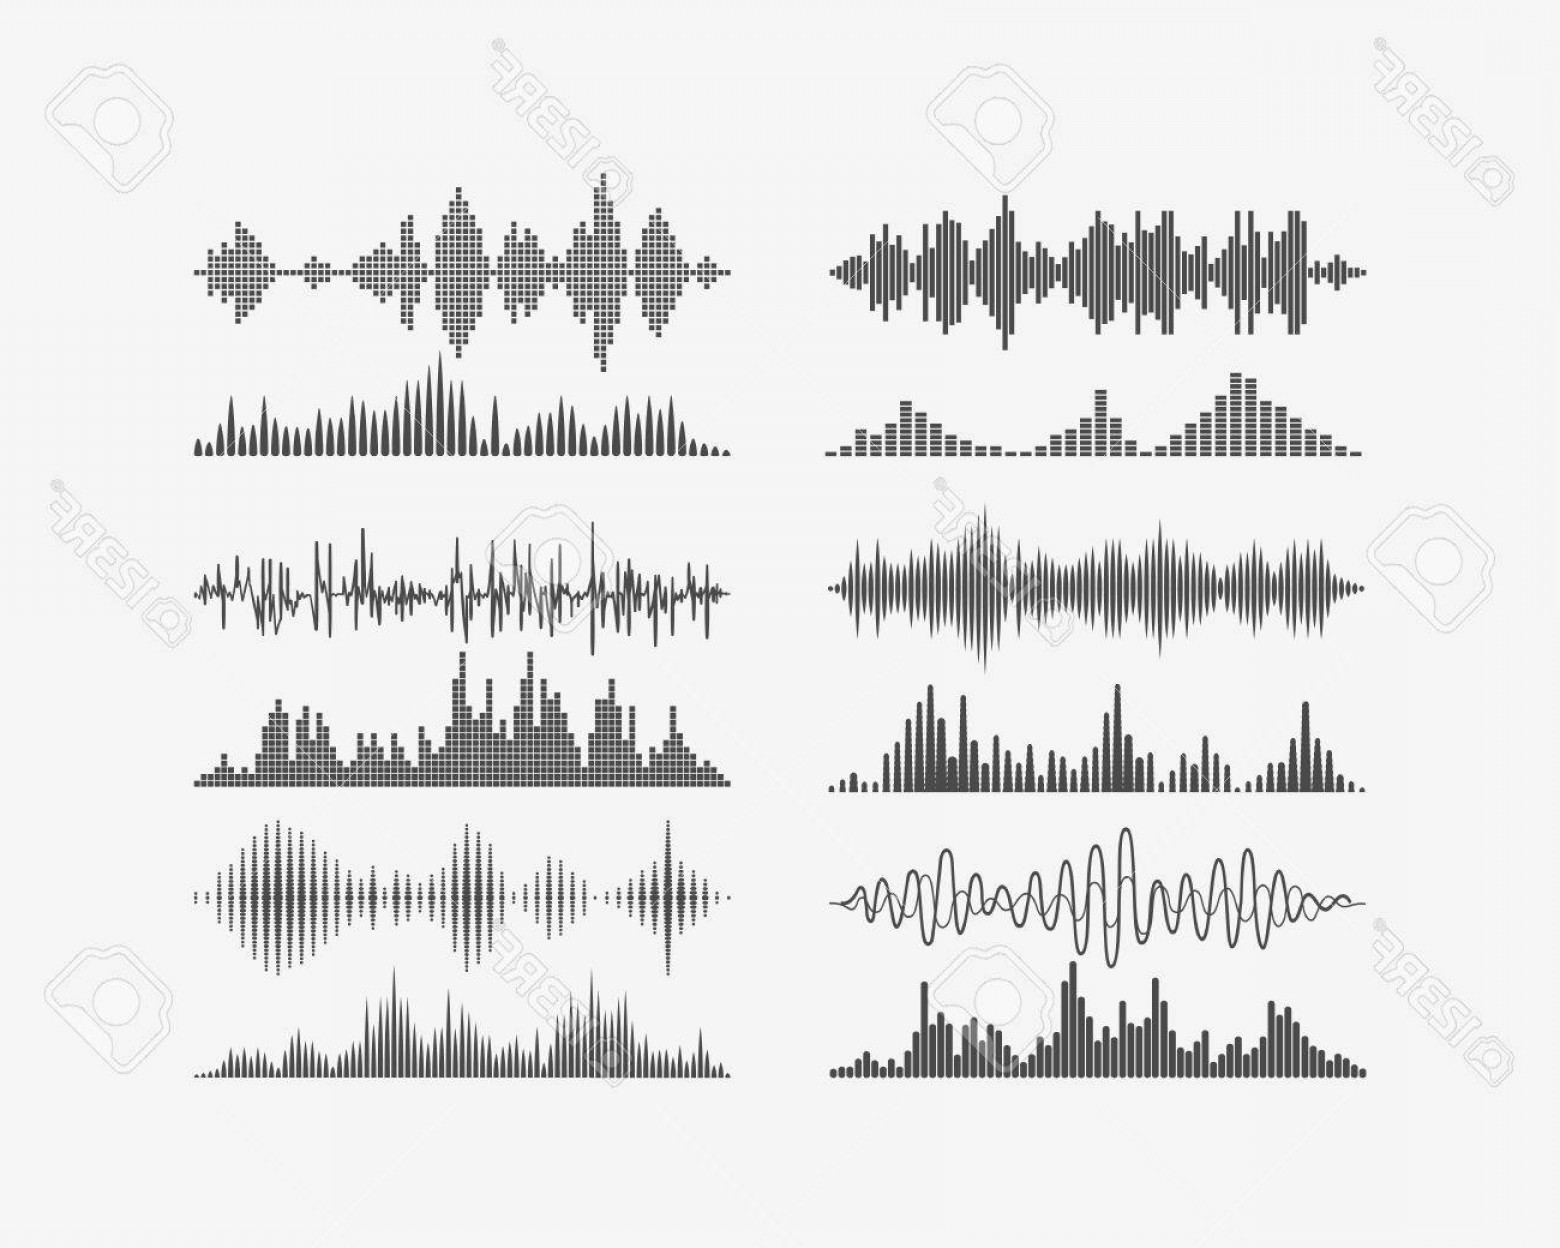 Radio Frequency Vector: Photostock Vector Vector Signal Waves Radio Frequency Waves Or Sound Analog And Digital Waves Forms